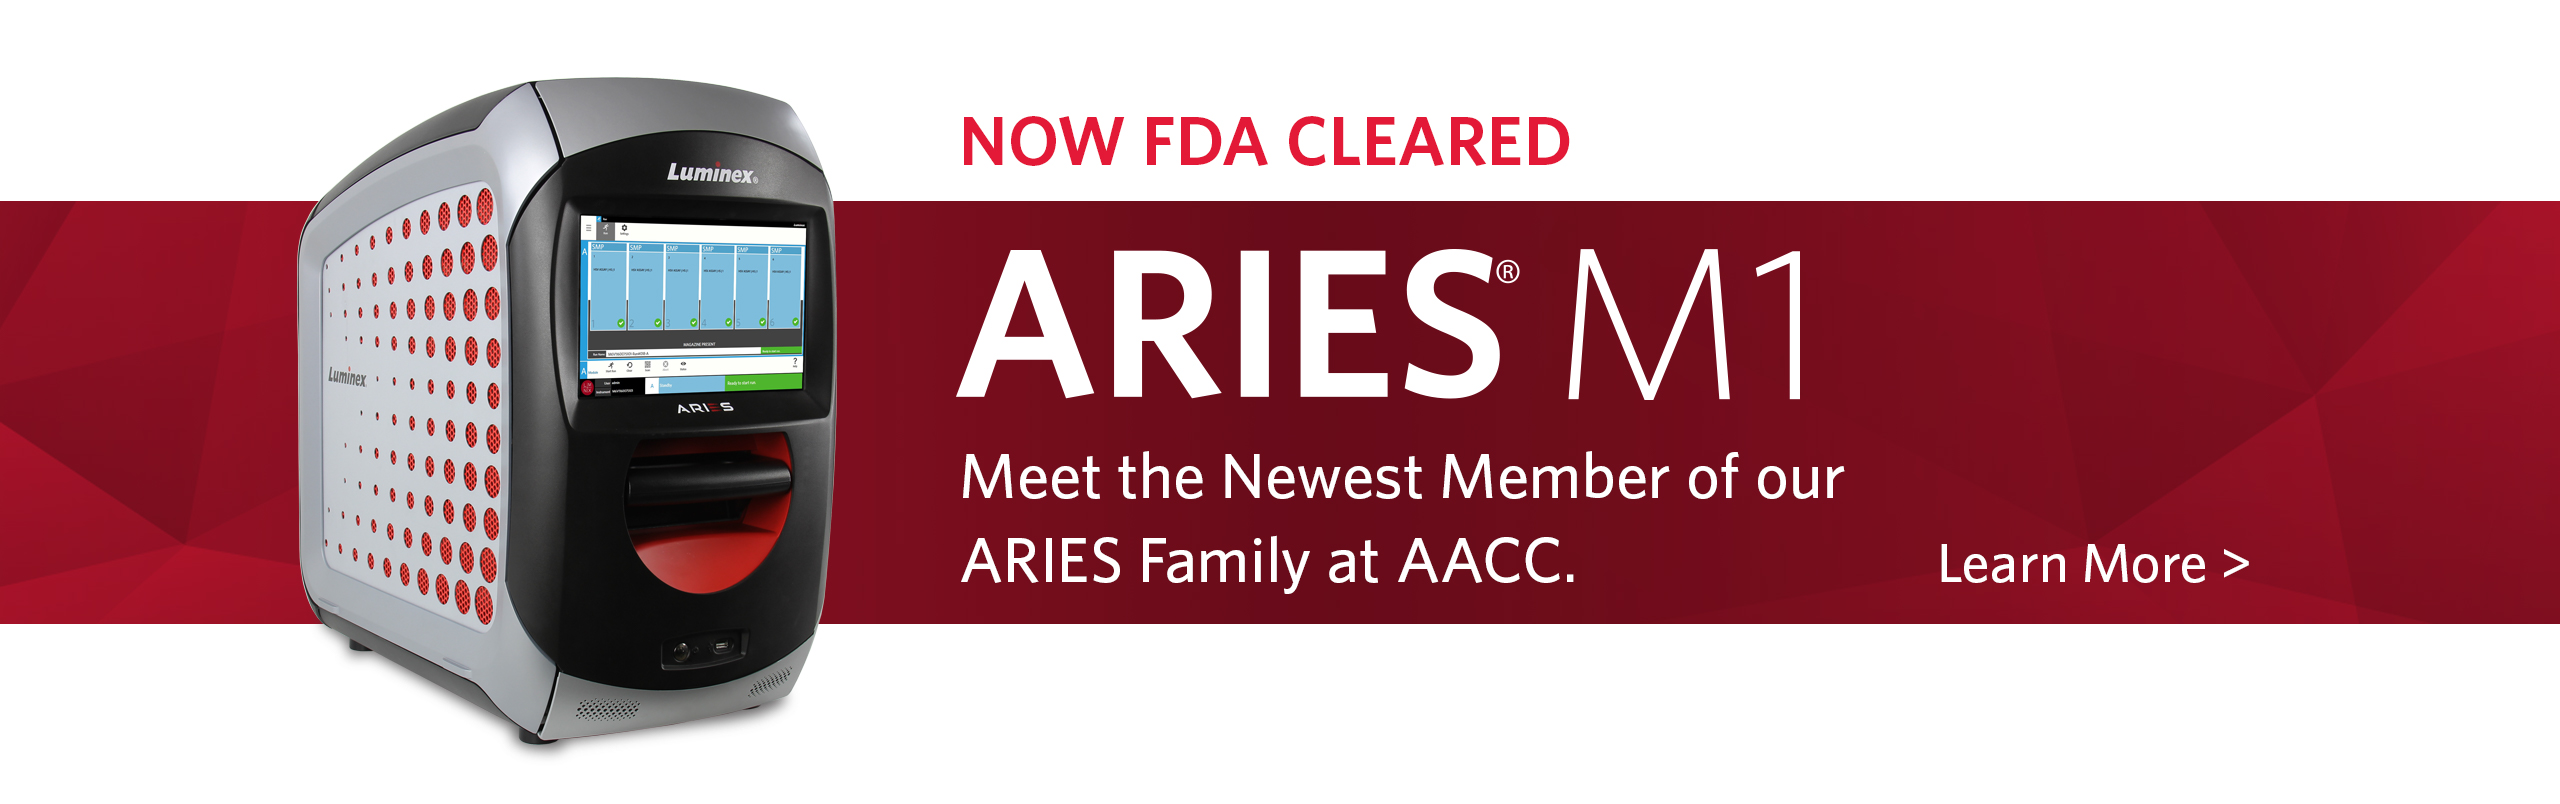 ARIES® M1 is now FDA Cleared